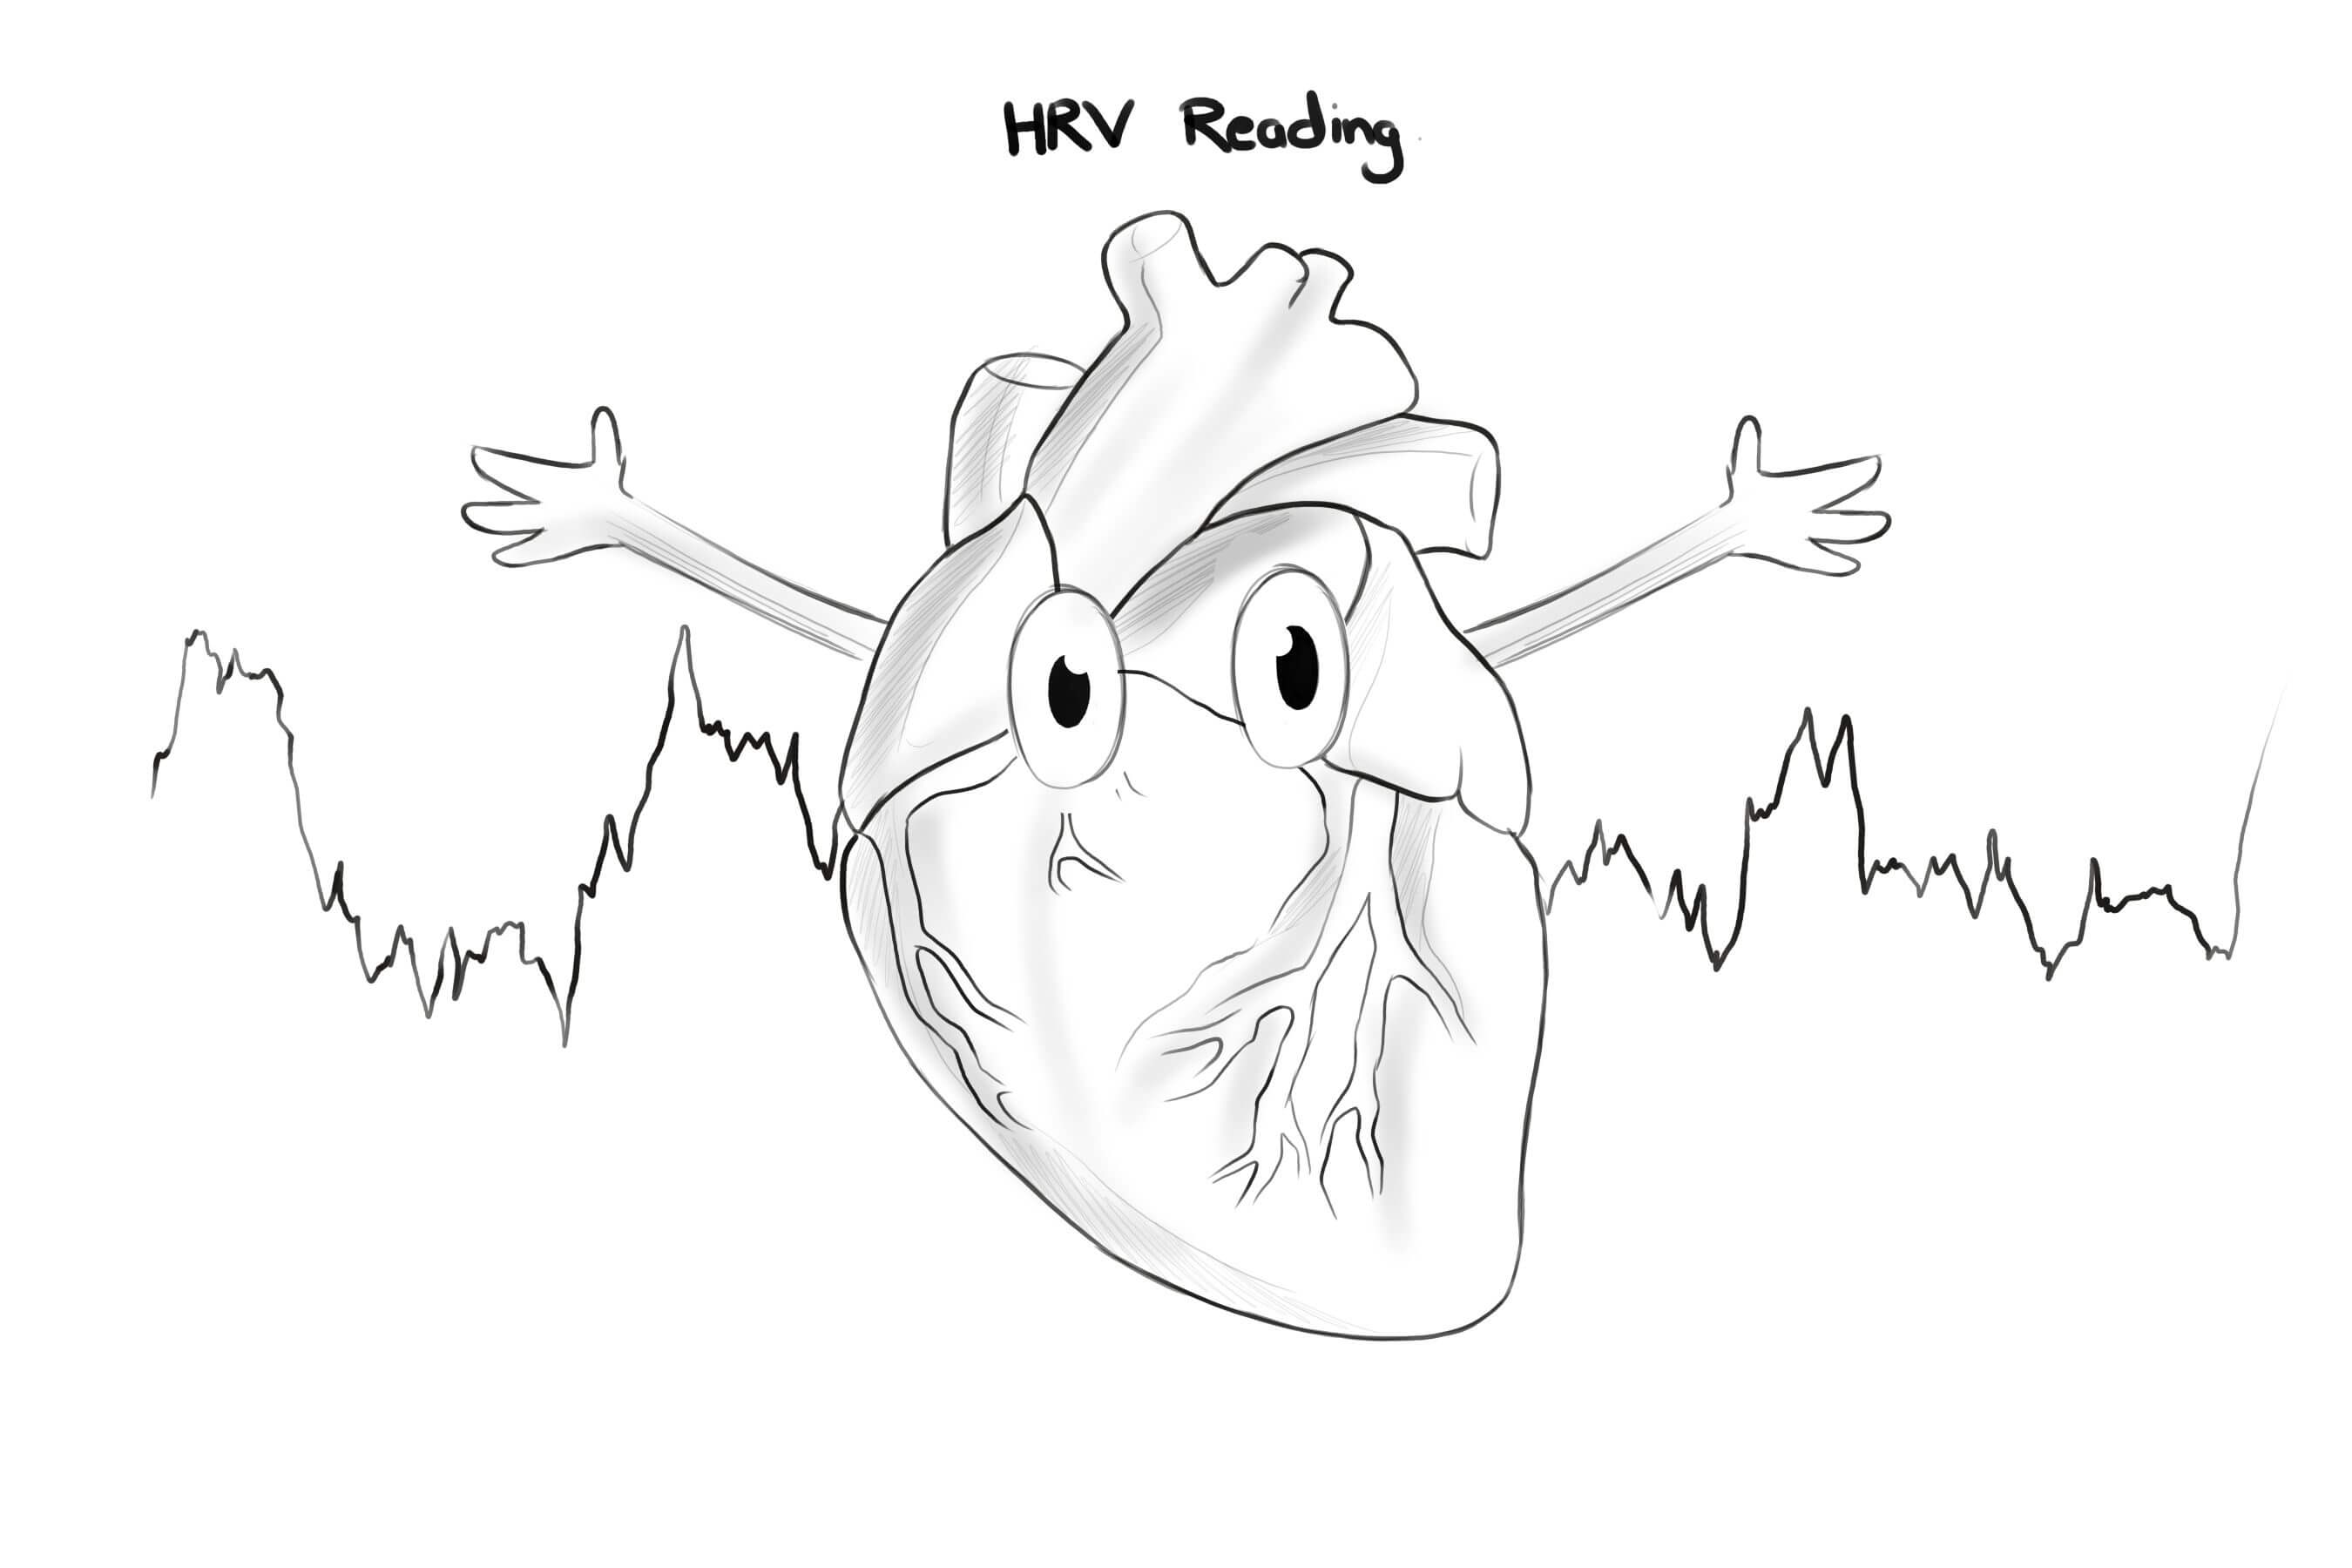 HRV READING: WAVE AND HEART